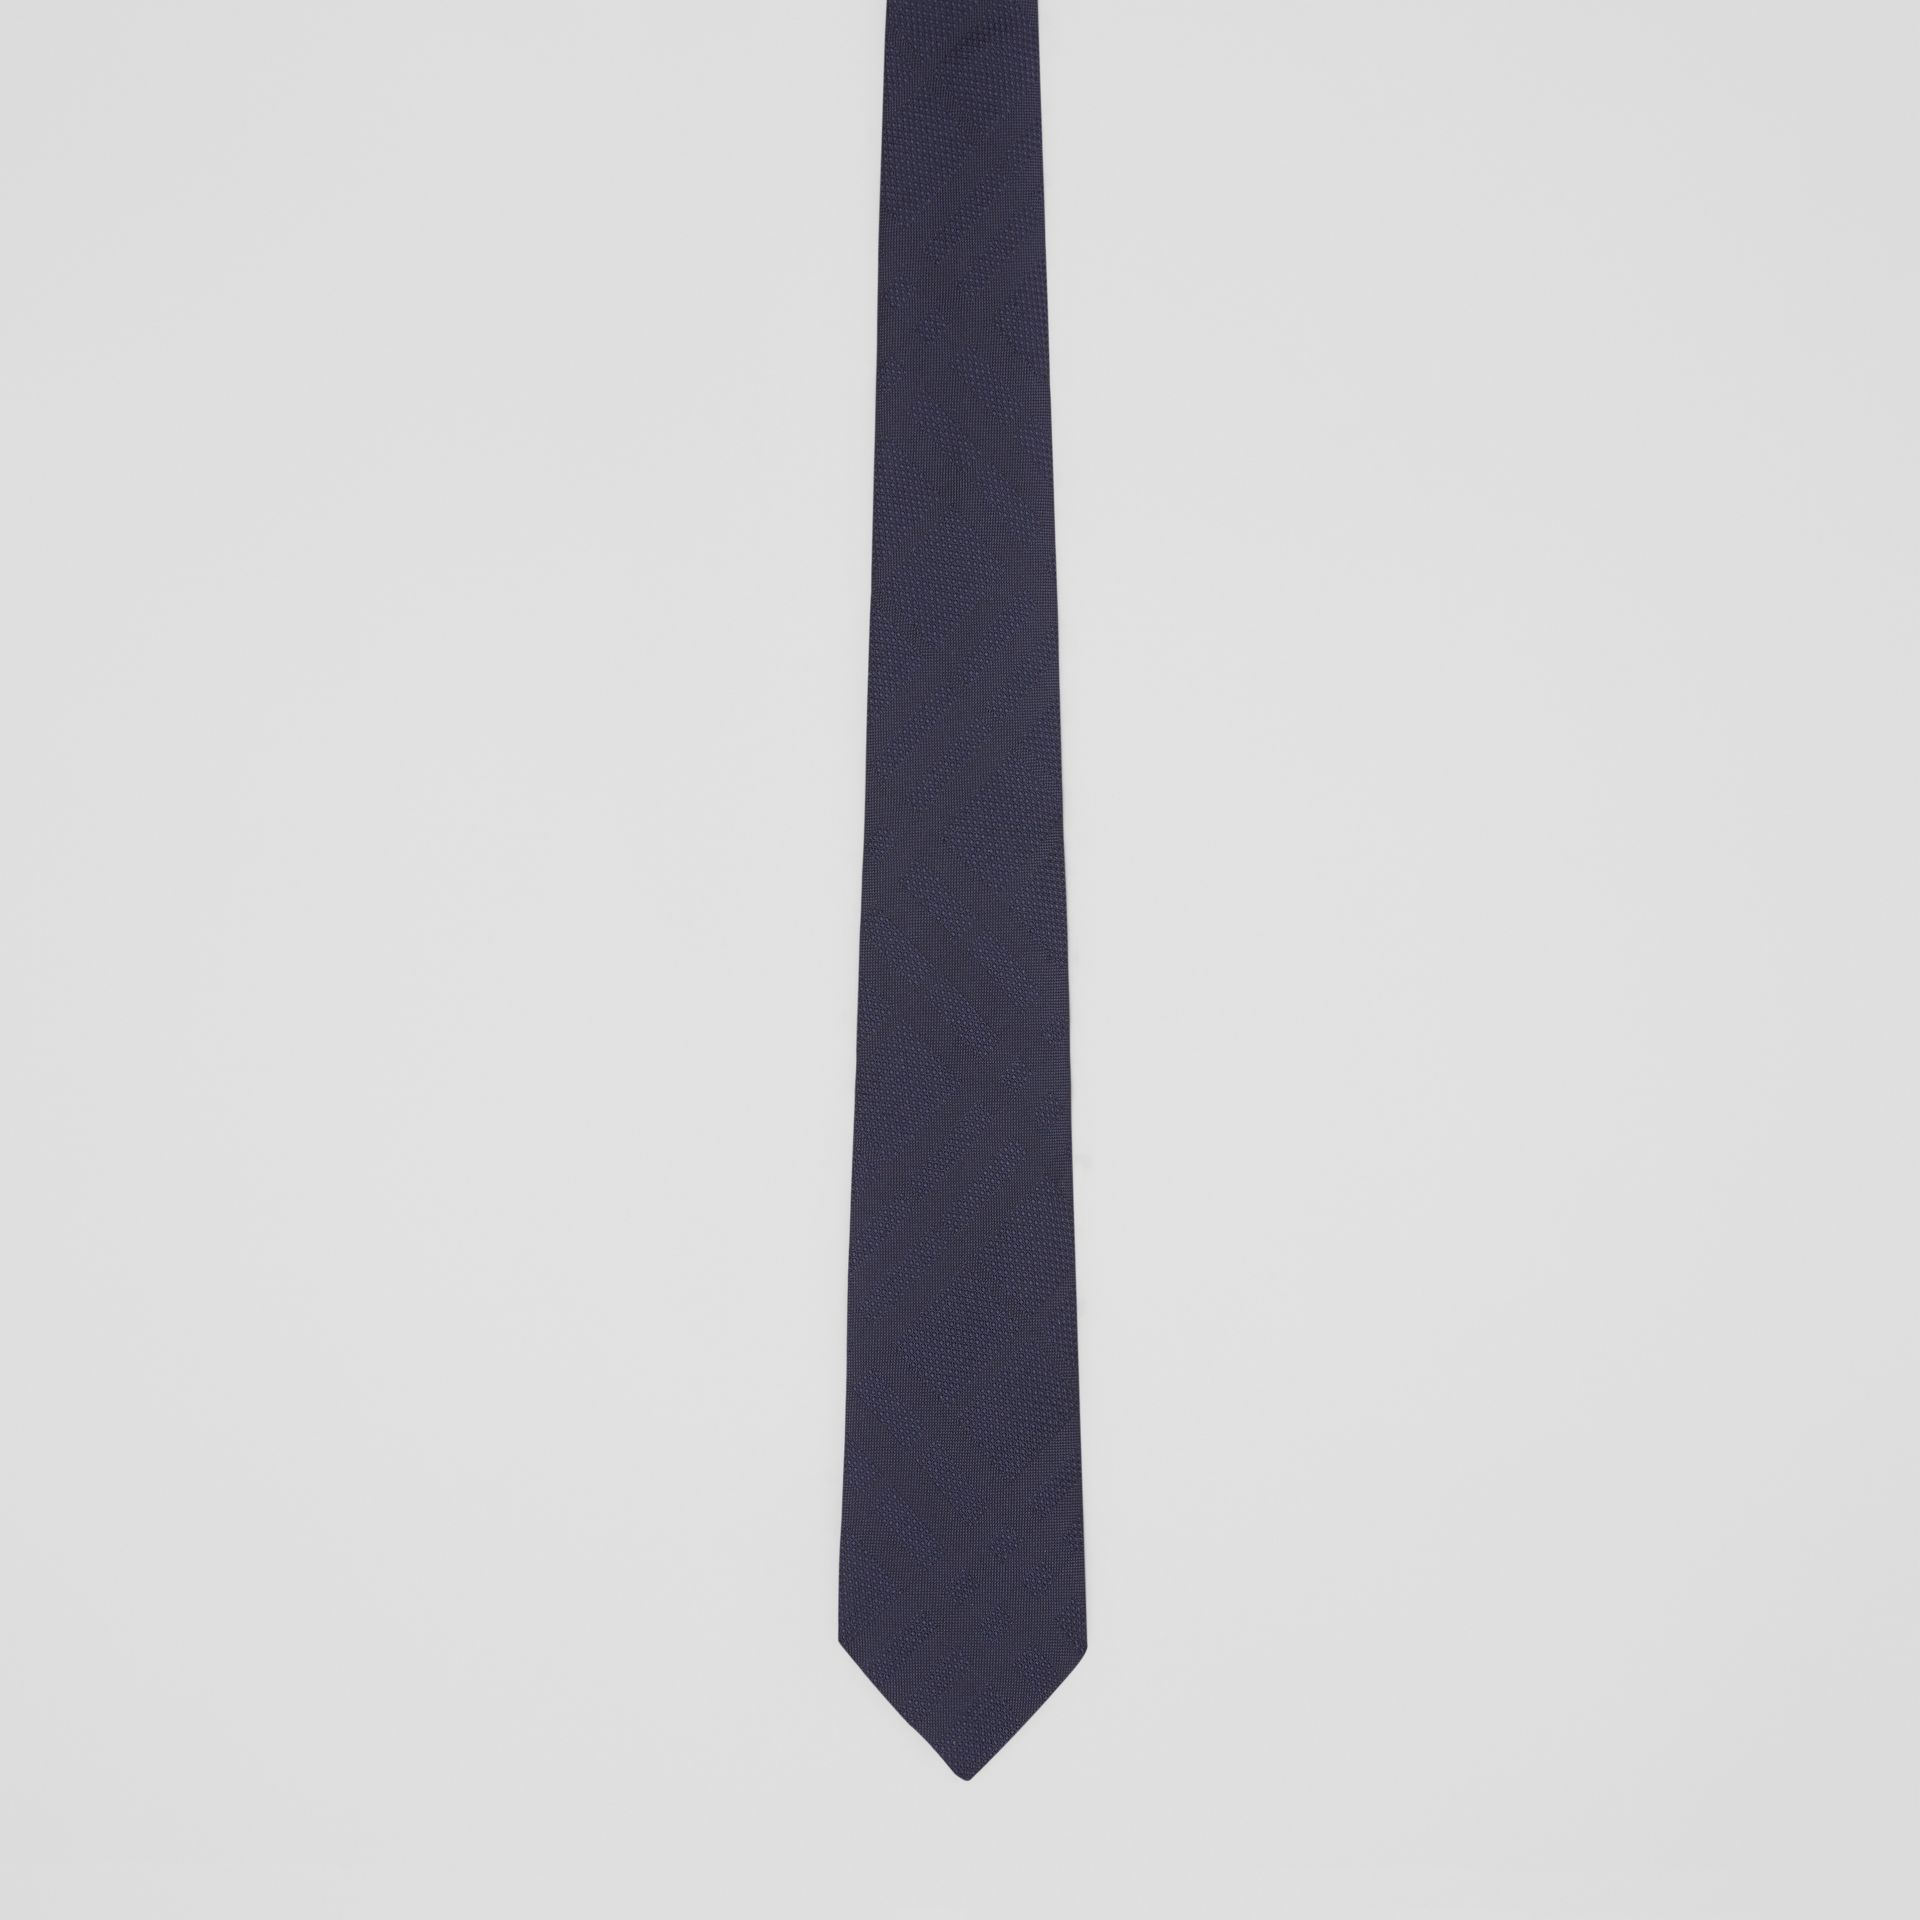 Classic Cut Check Silk Jacquard Tie in Navy - Men | Burberry United States - gallery image 3